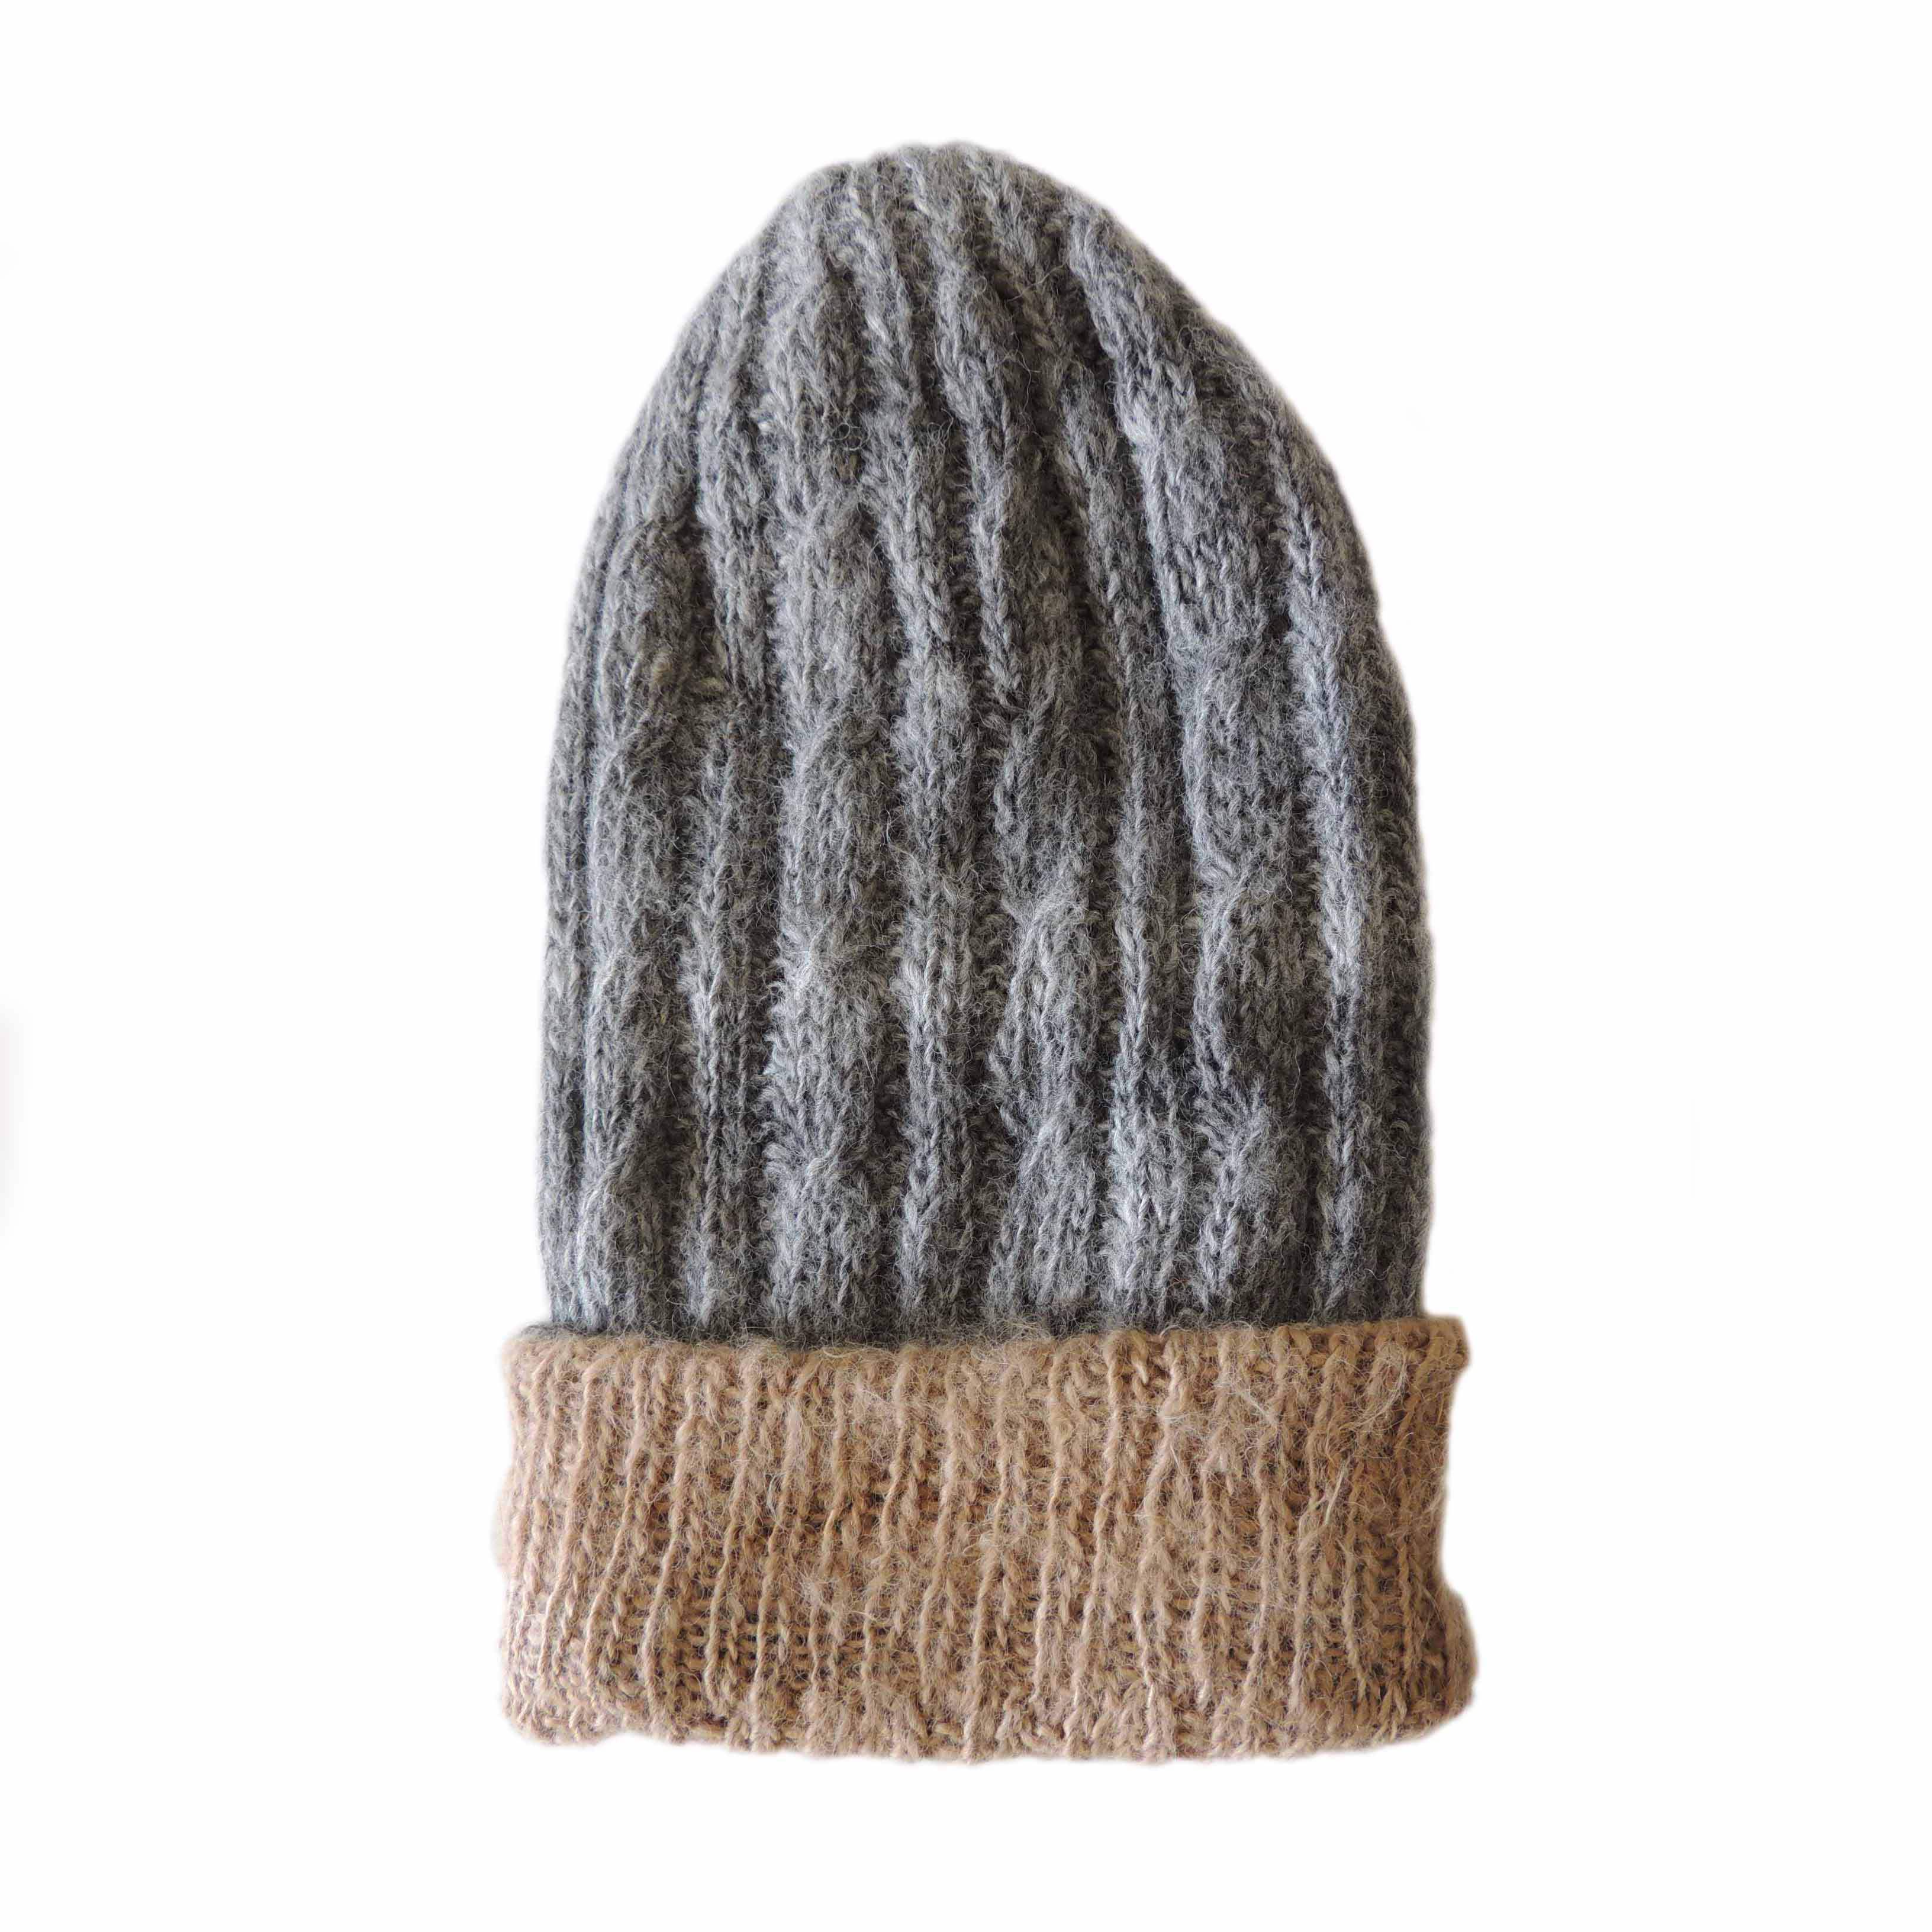 PFL knitwear, hand knitted reversible beanies